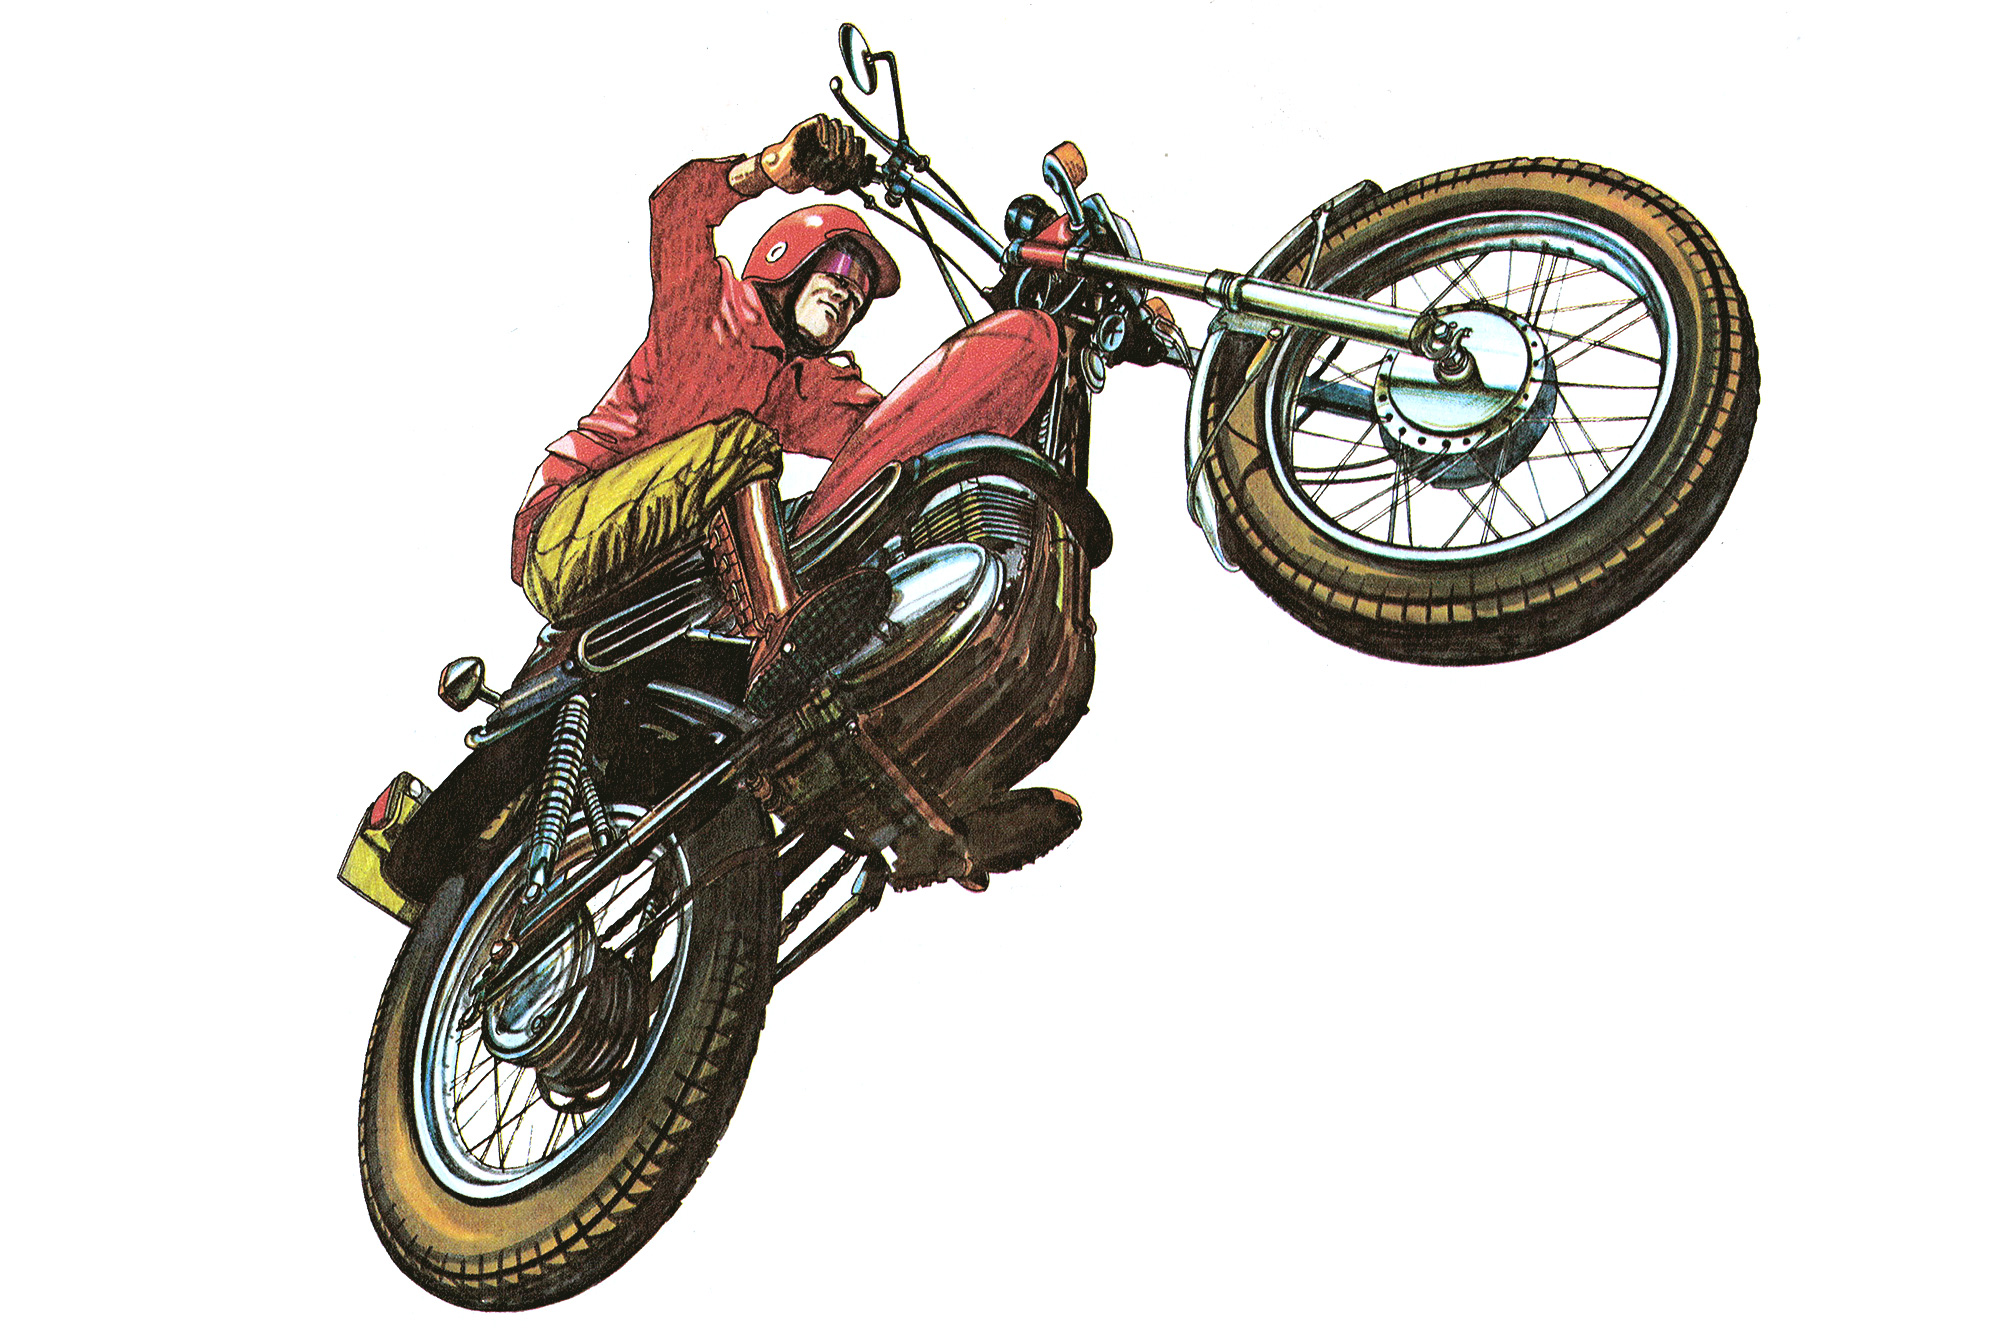 Illustration of a 1970s Aussie Enduro Rider and motorcycle